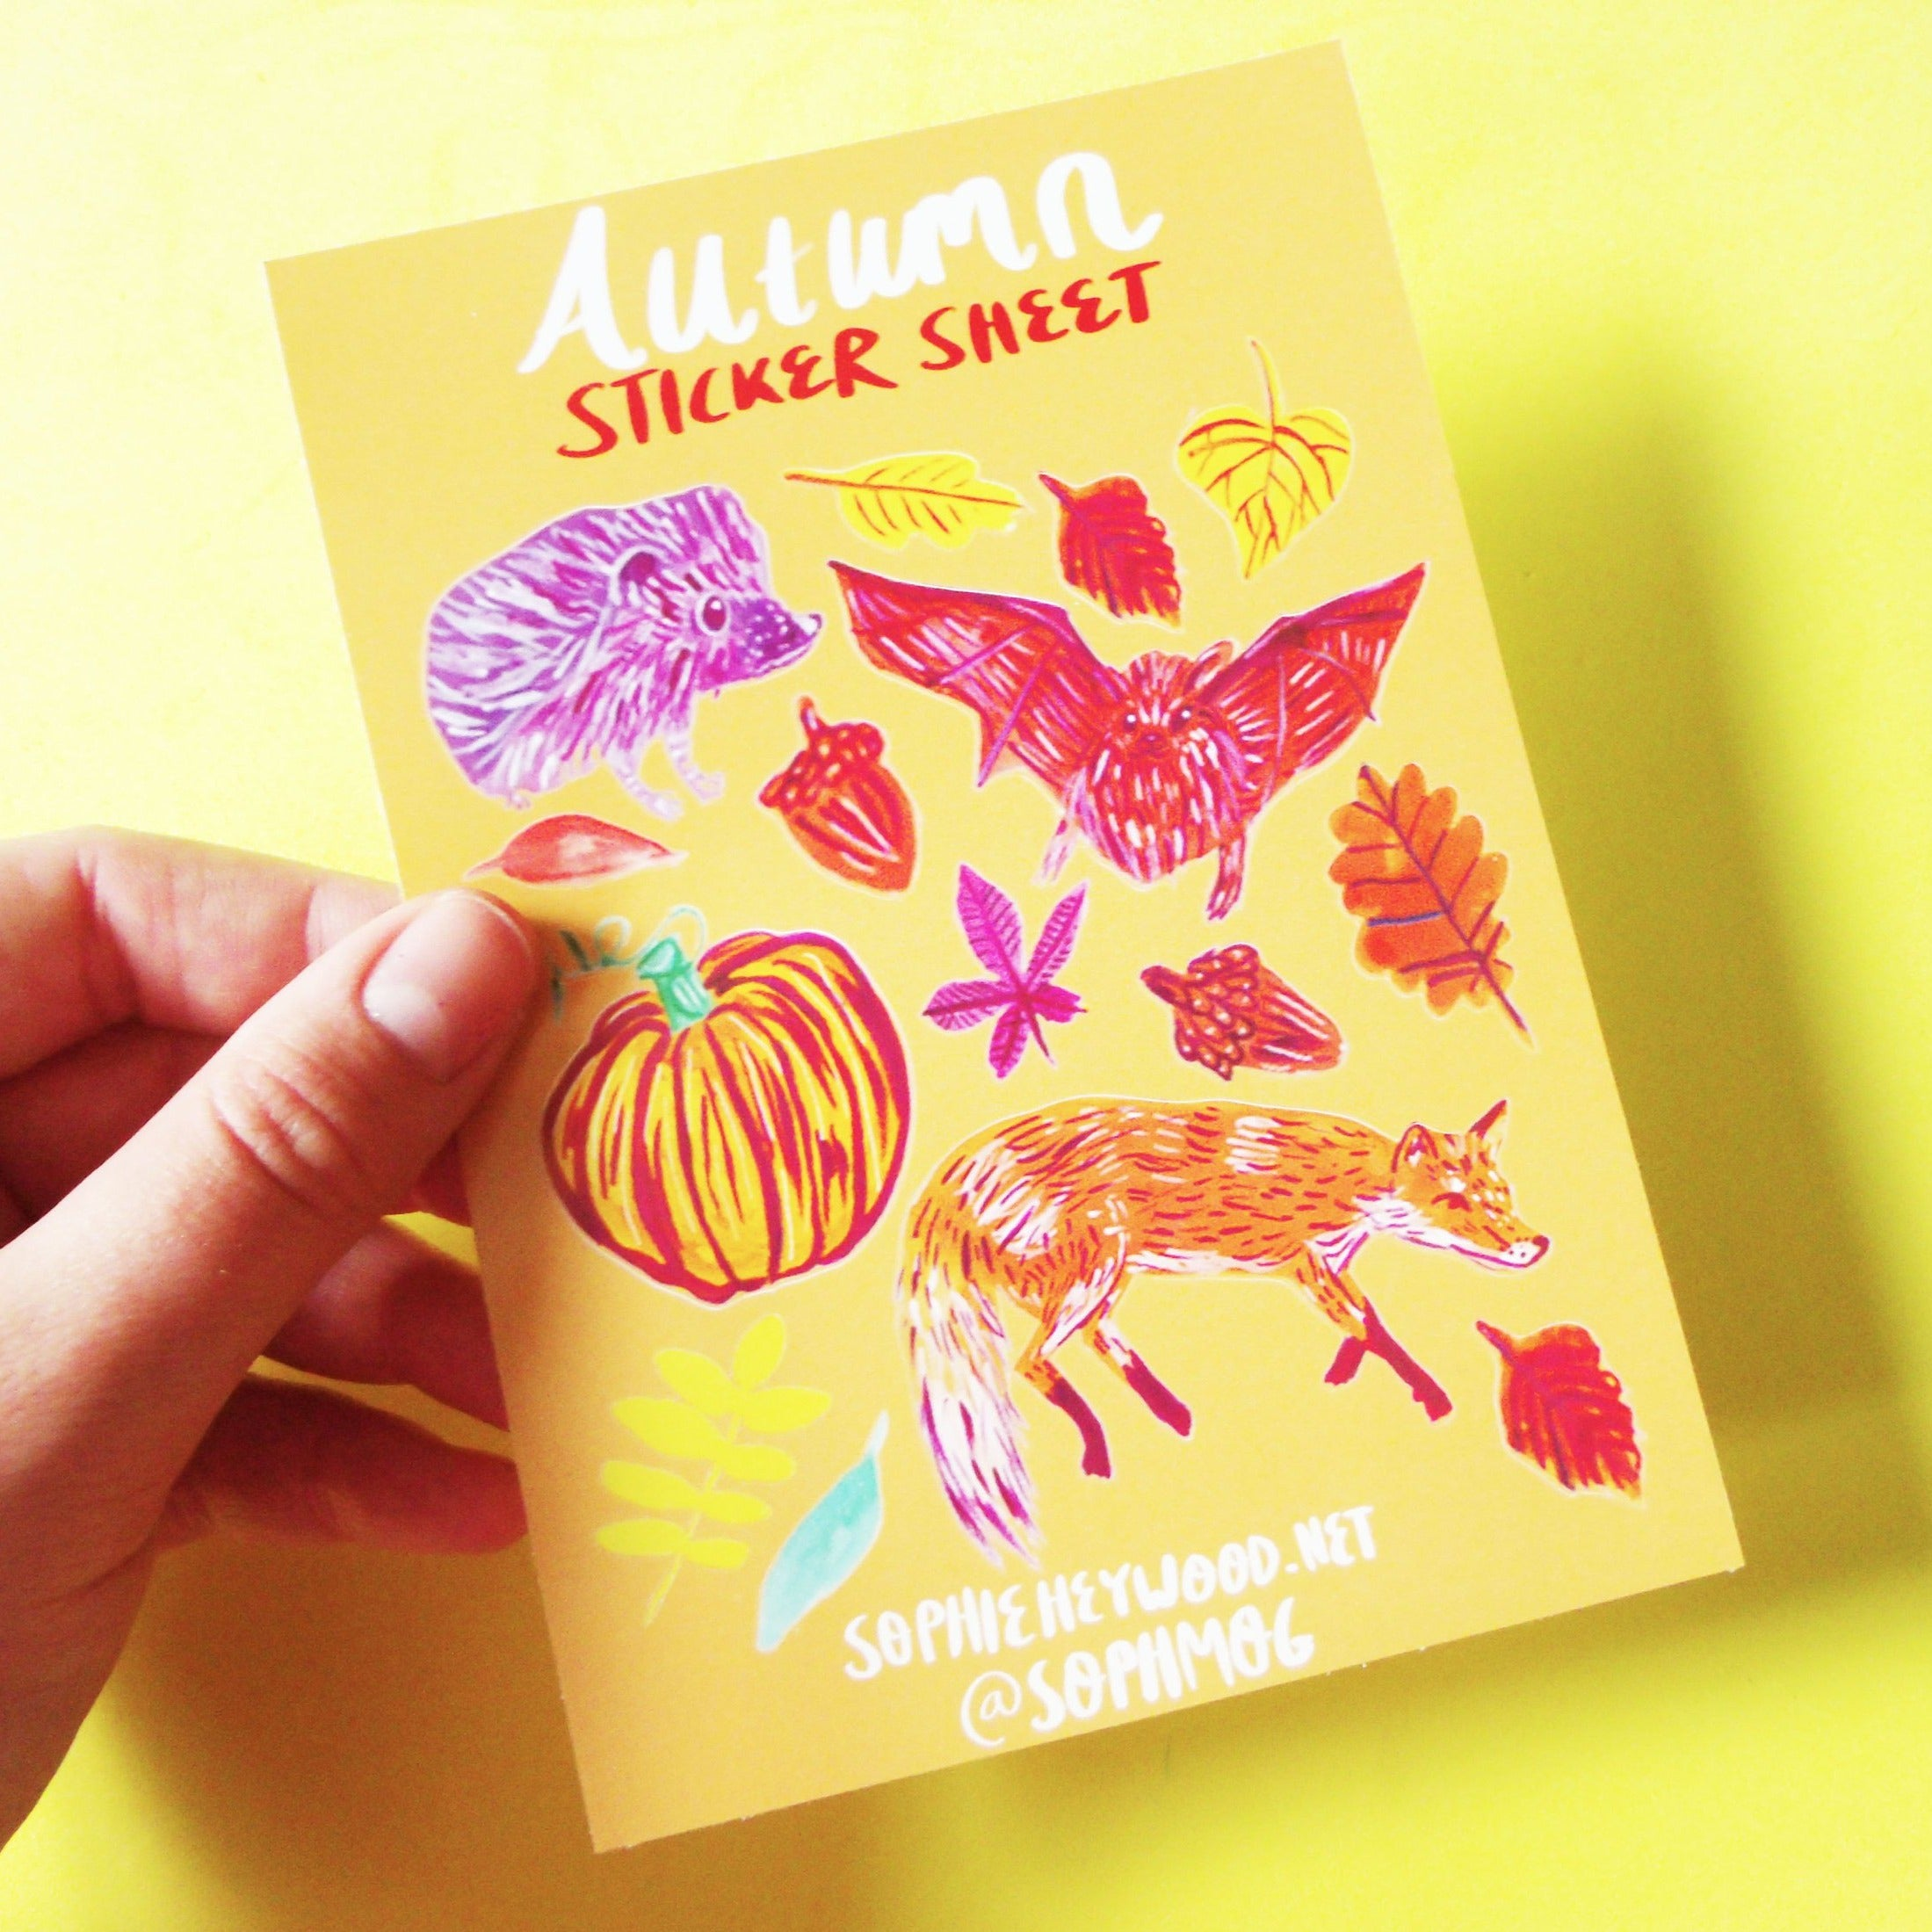 a6 sticker sheet. the sheet is orange and includes a hedgehog, pumpkin, bat, fox, acorns and leaves.